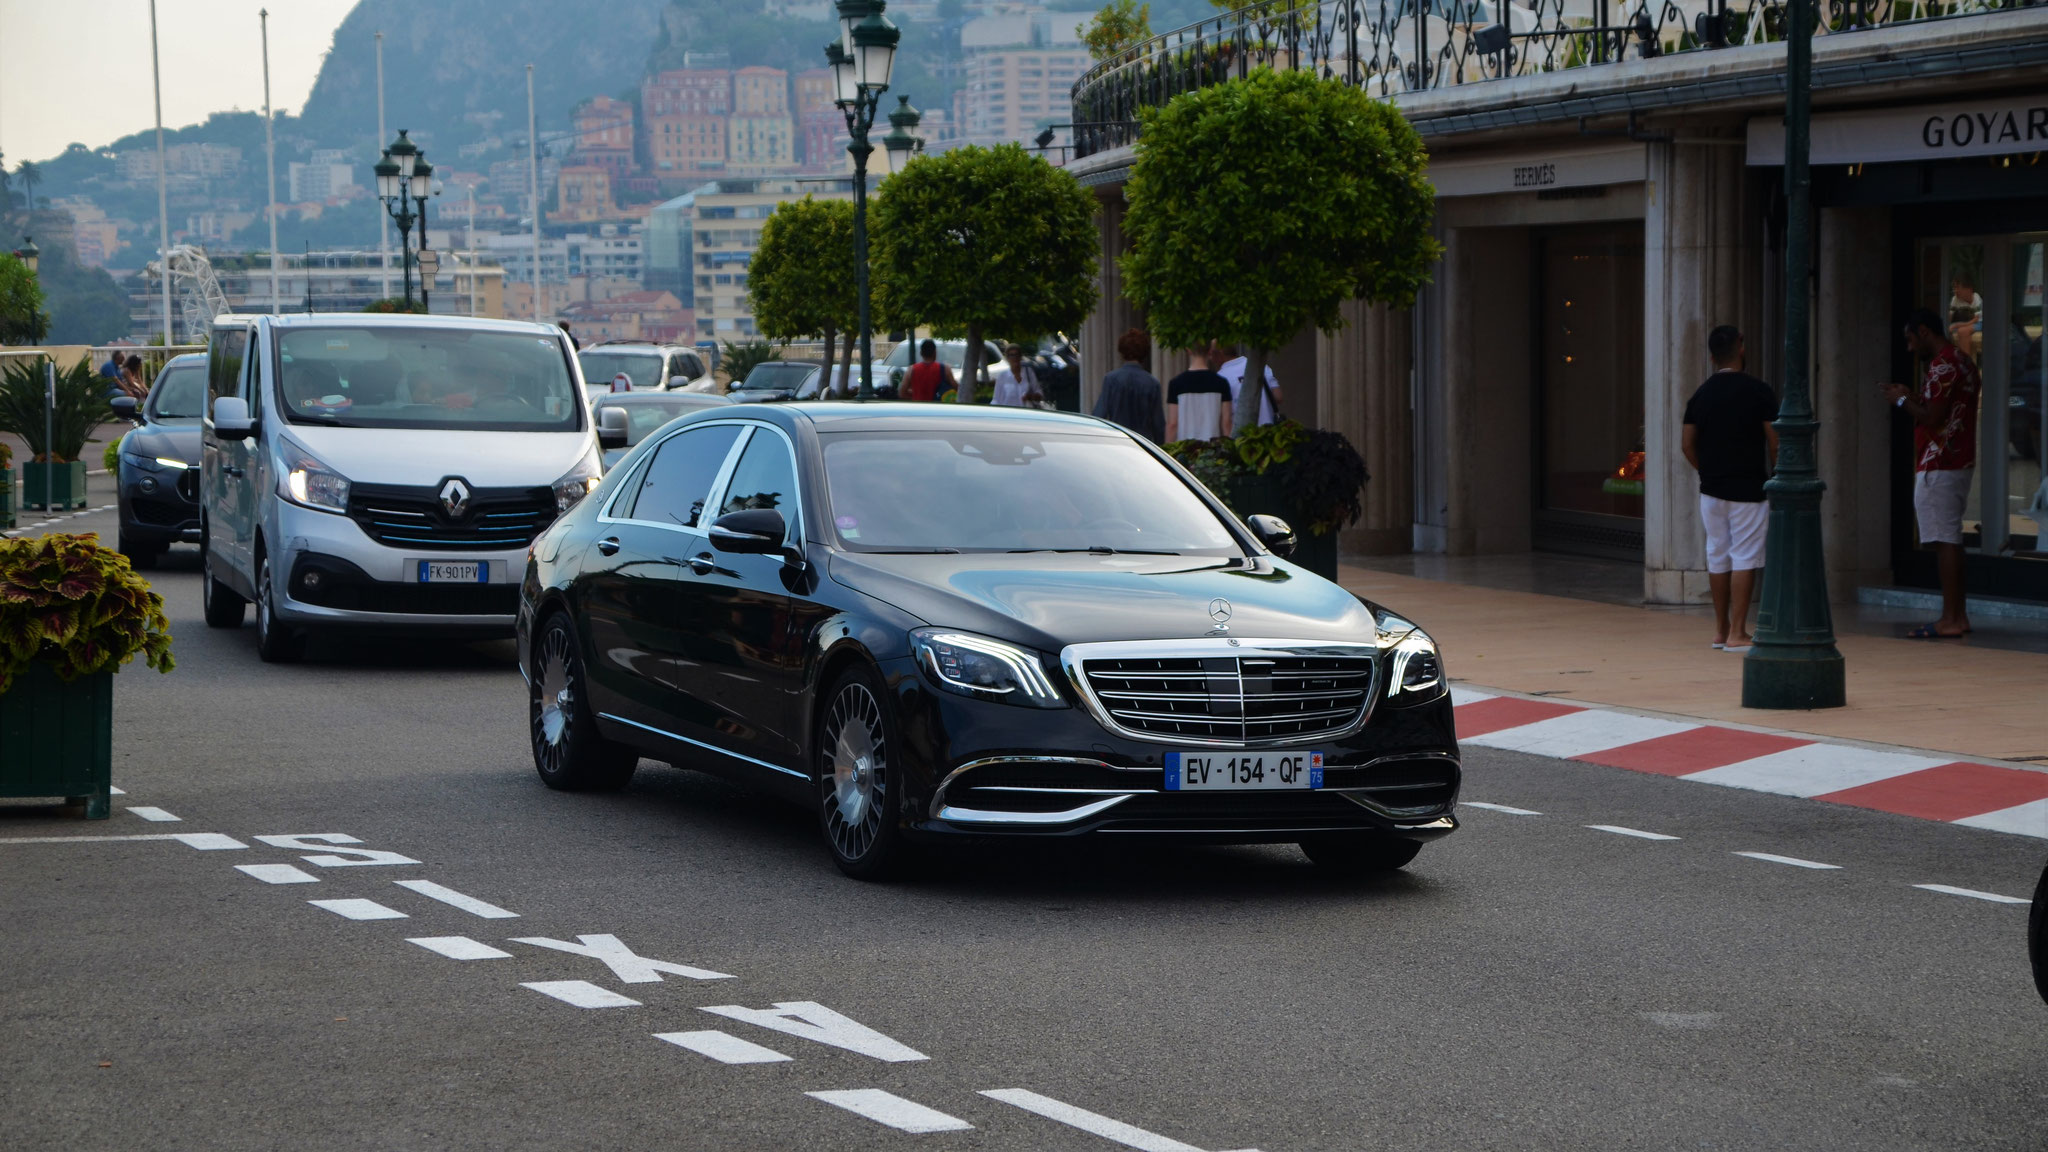 Mercedes Maybach S600 - EV-154-QF-75 (FRA)